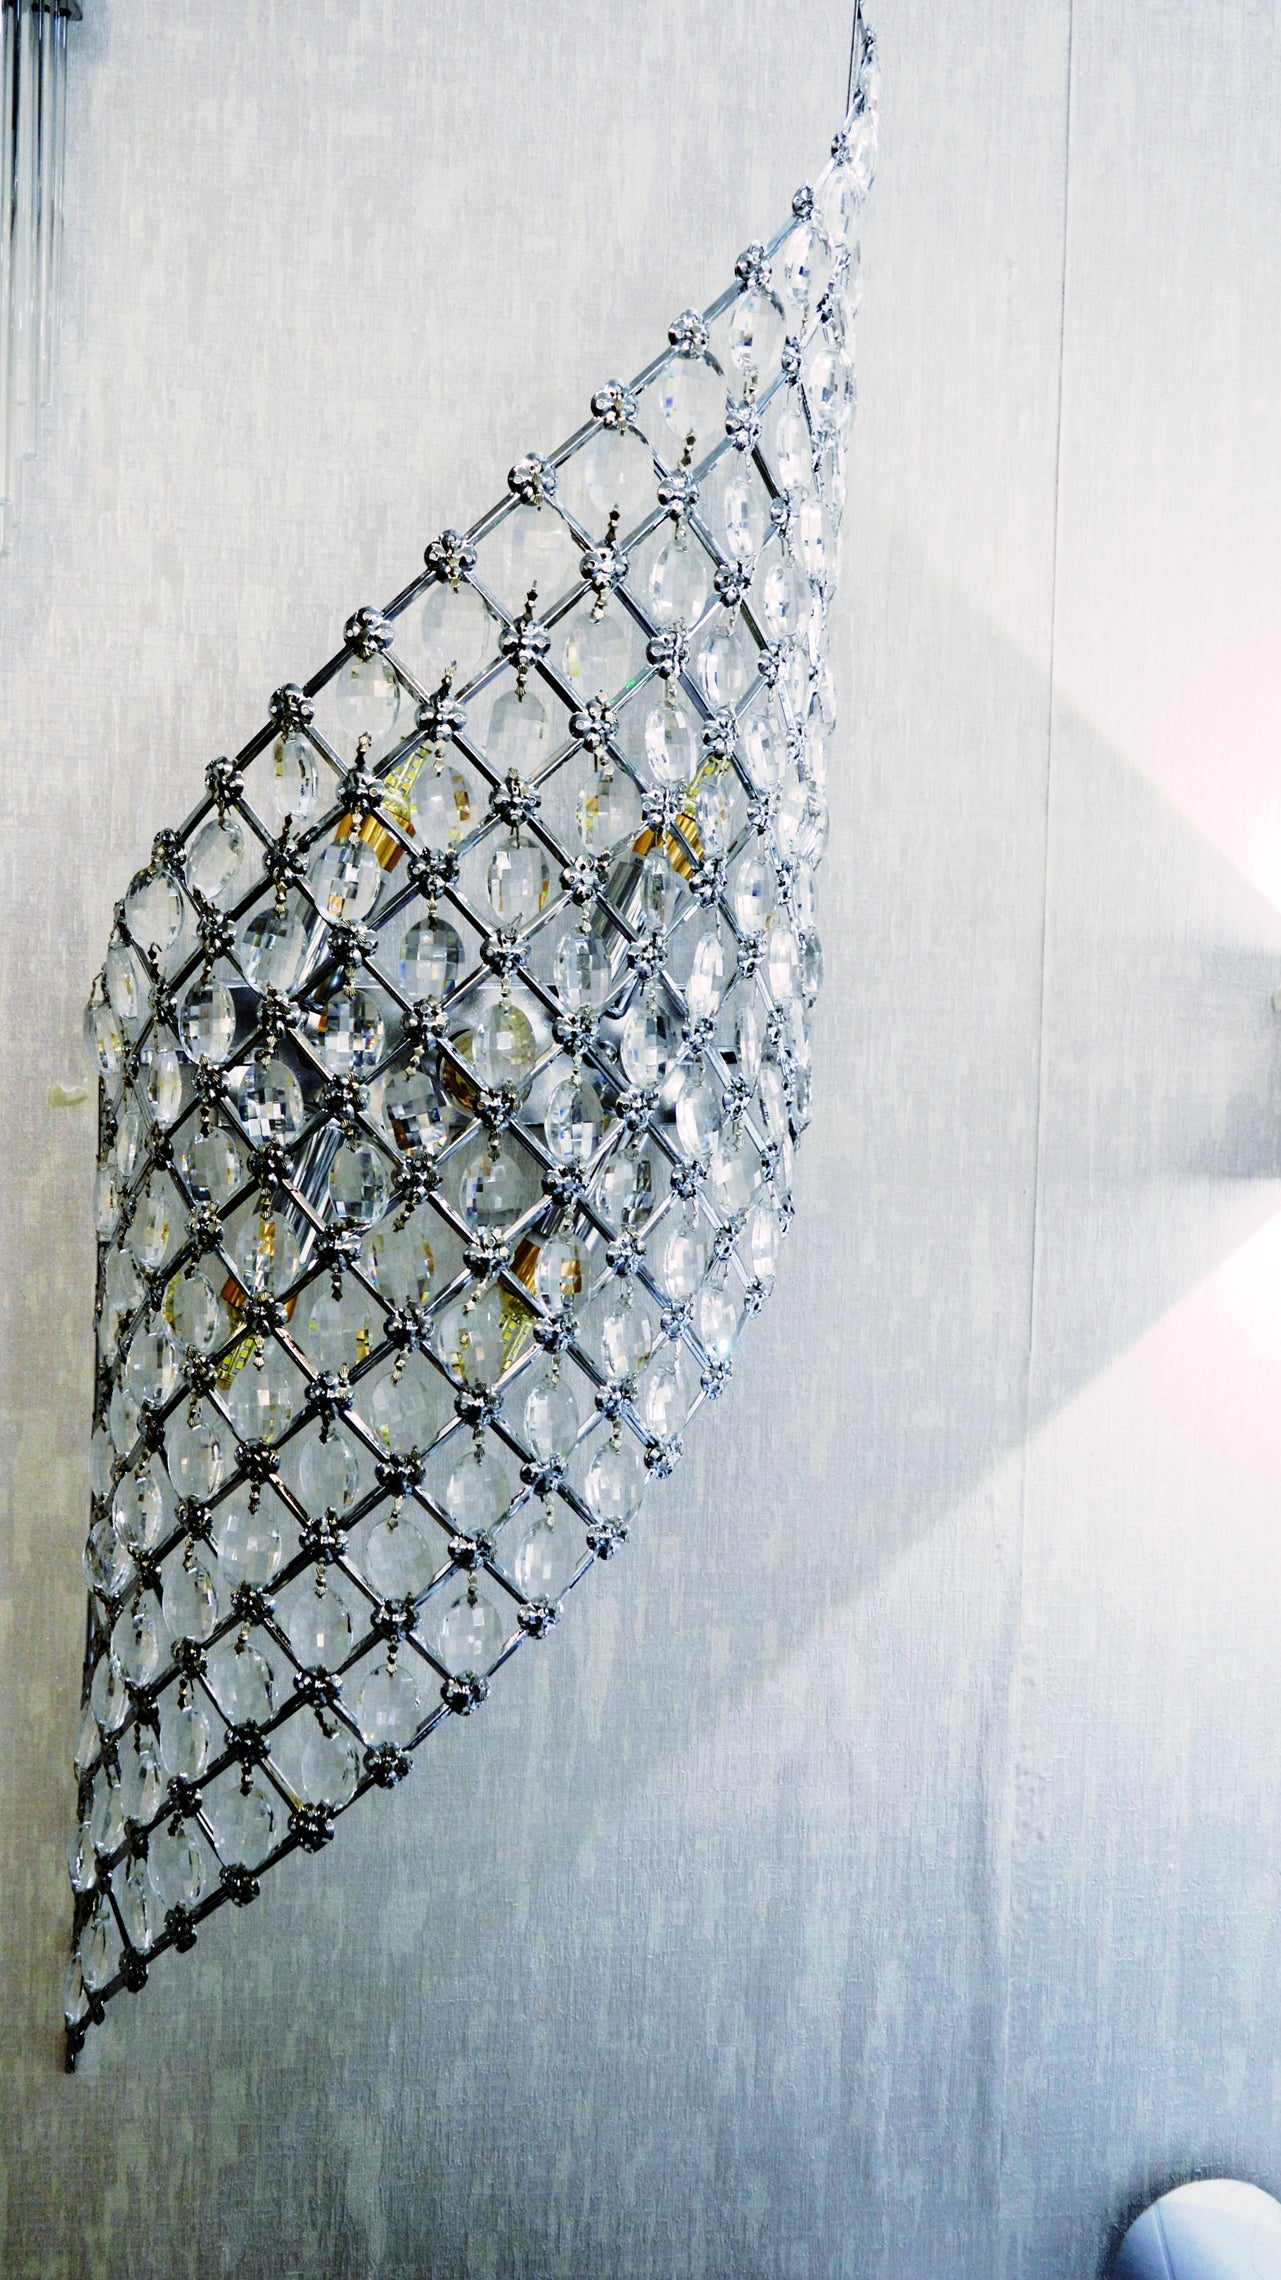 Crystallic Wall Mounted Lighting (1)